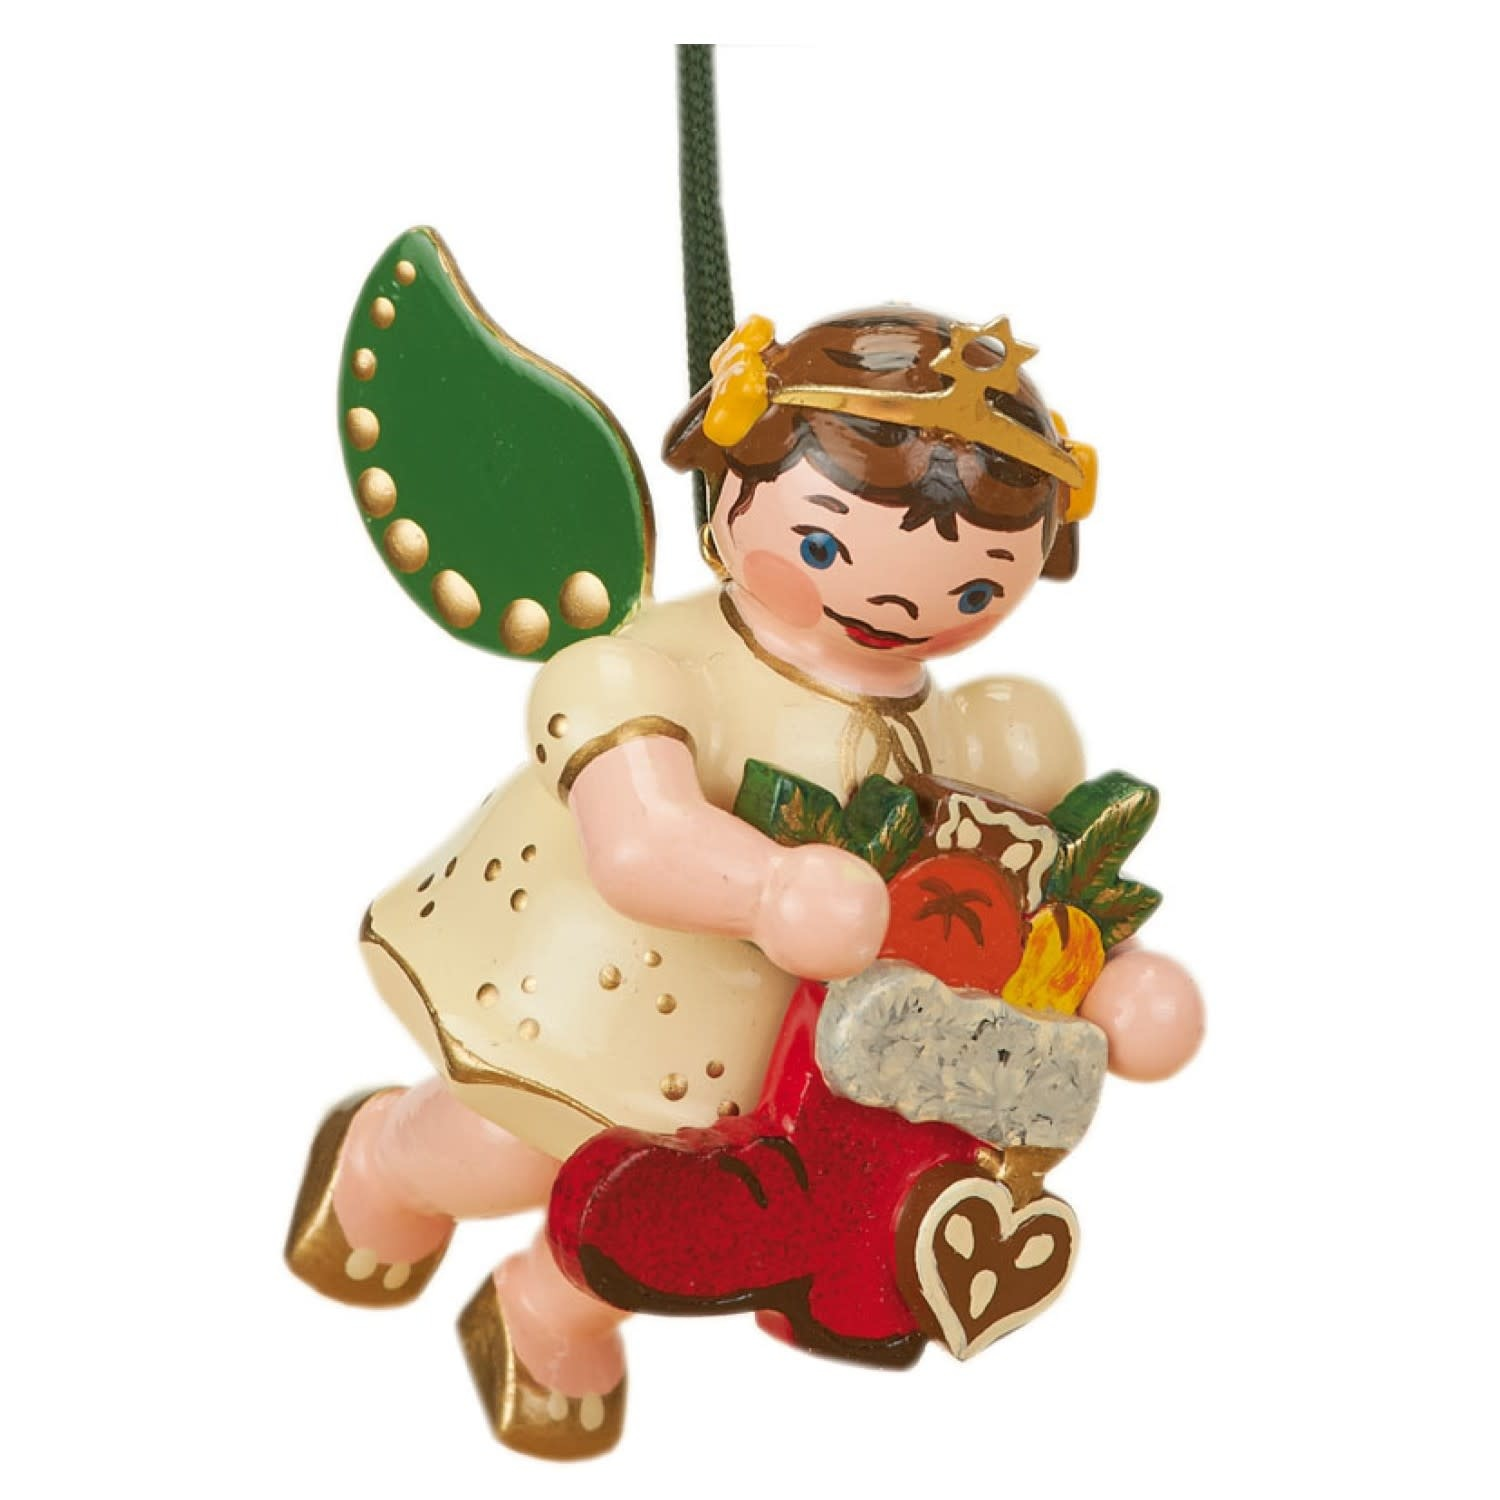 120h1006 Angel with Boots Ornament - 2.36 inches high